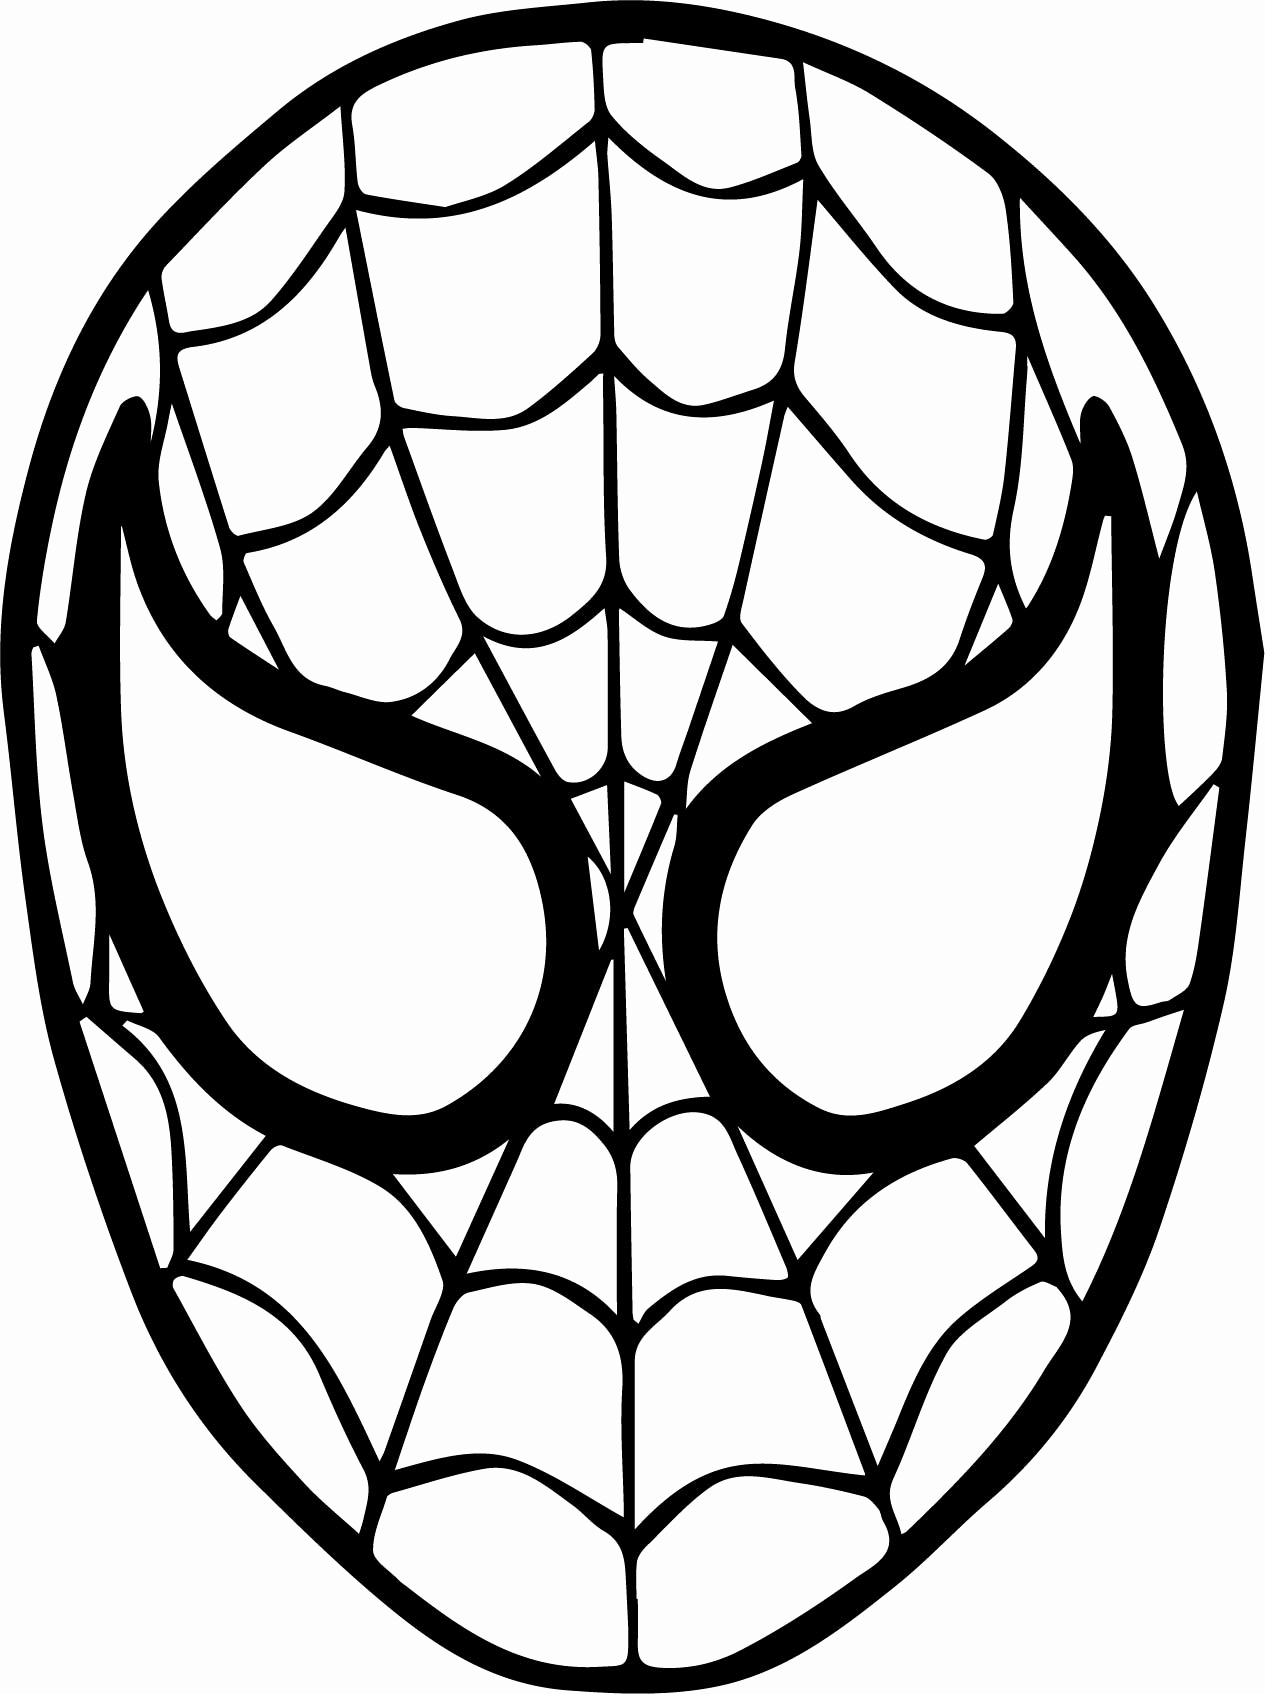 coloring face mask spiderman mask coloring page coloring sky mask face coloring